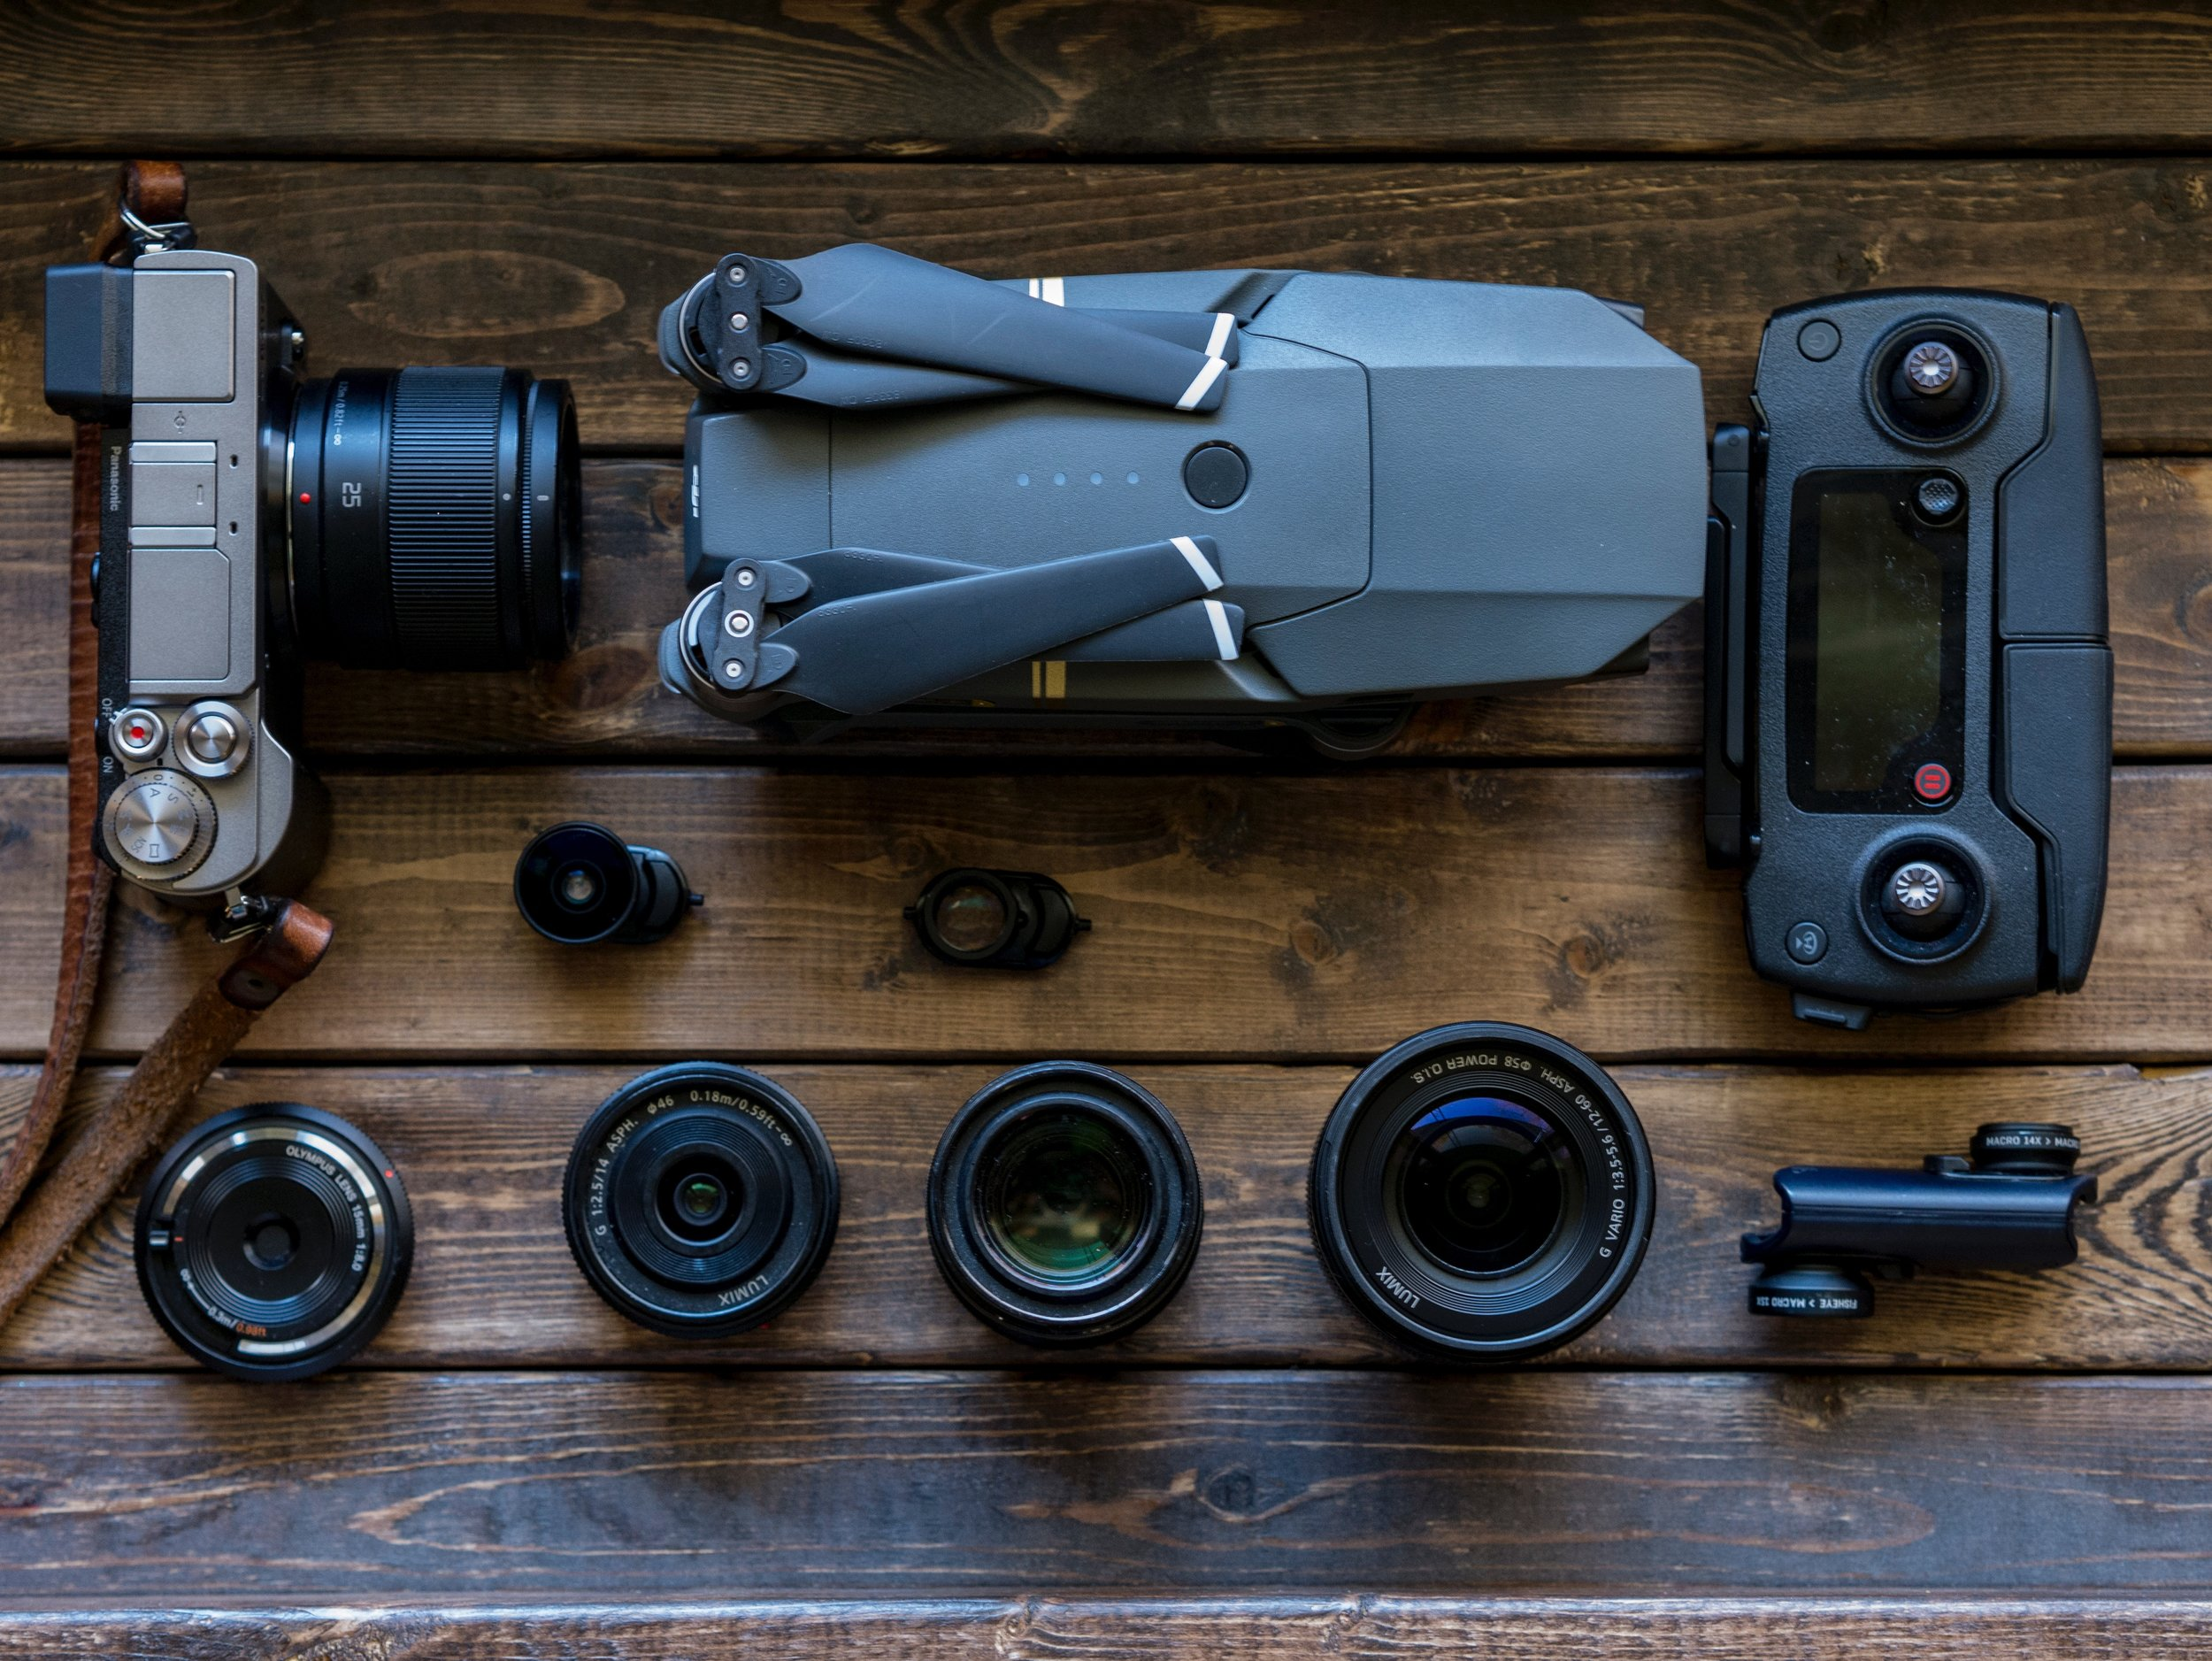 MY CAMERA GEAR - I'm not a professional photographer, but if you're interested, this is my gear list.